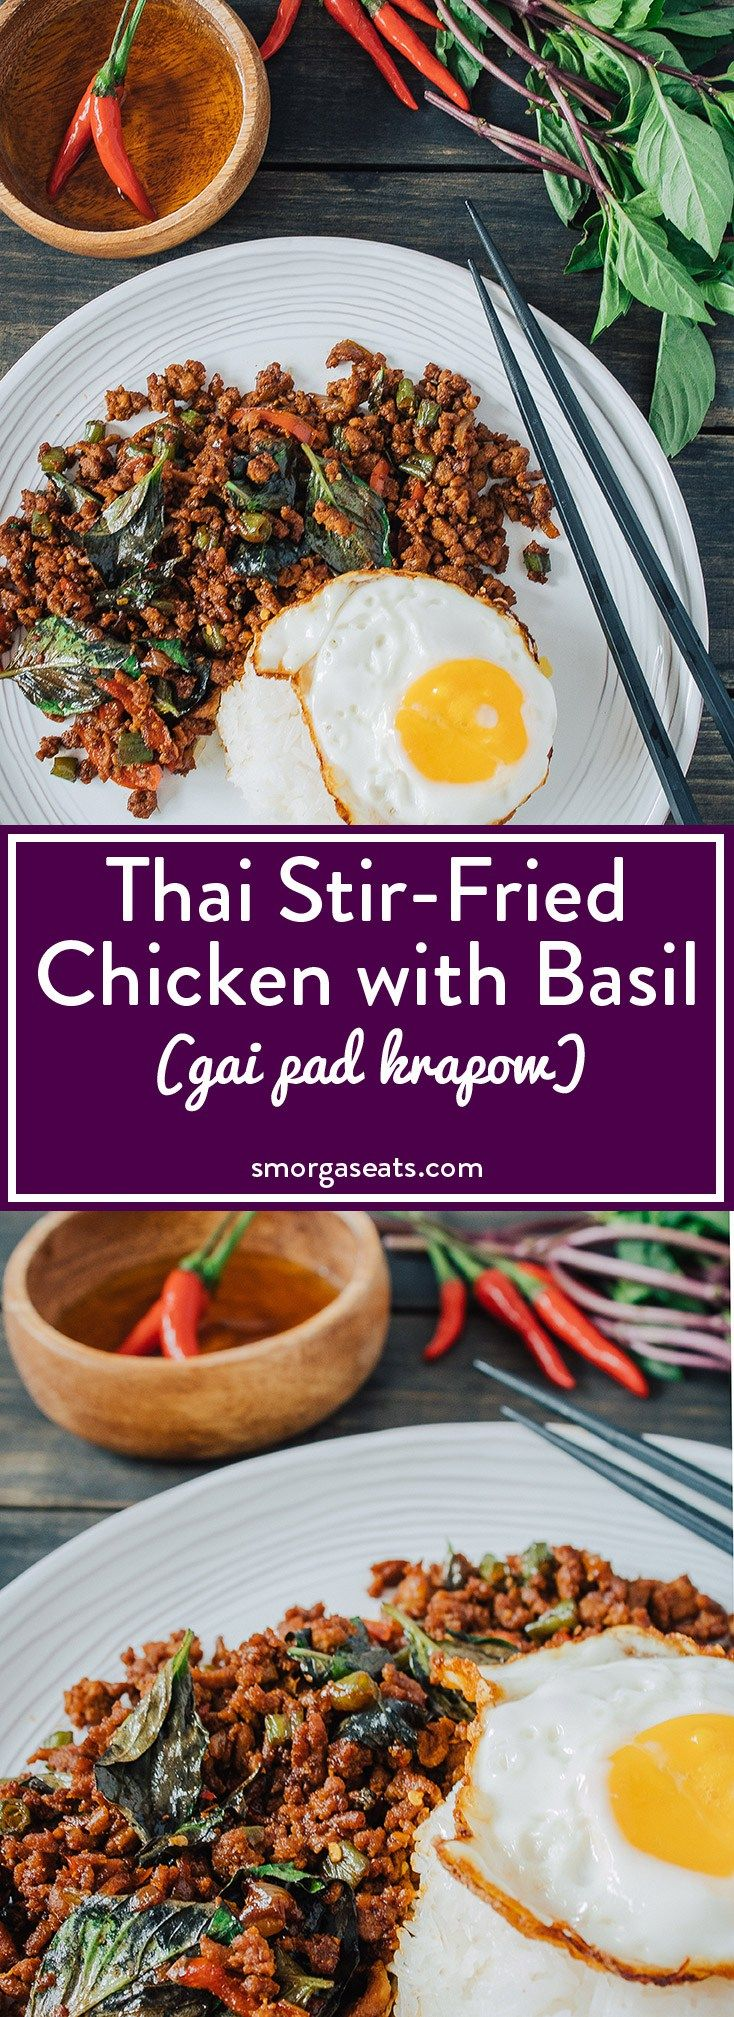 25+ best ideas about Pad krapow on Pinterest | Thai rice ...